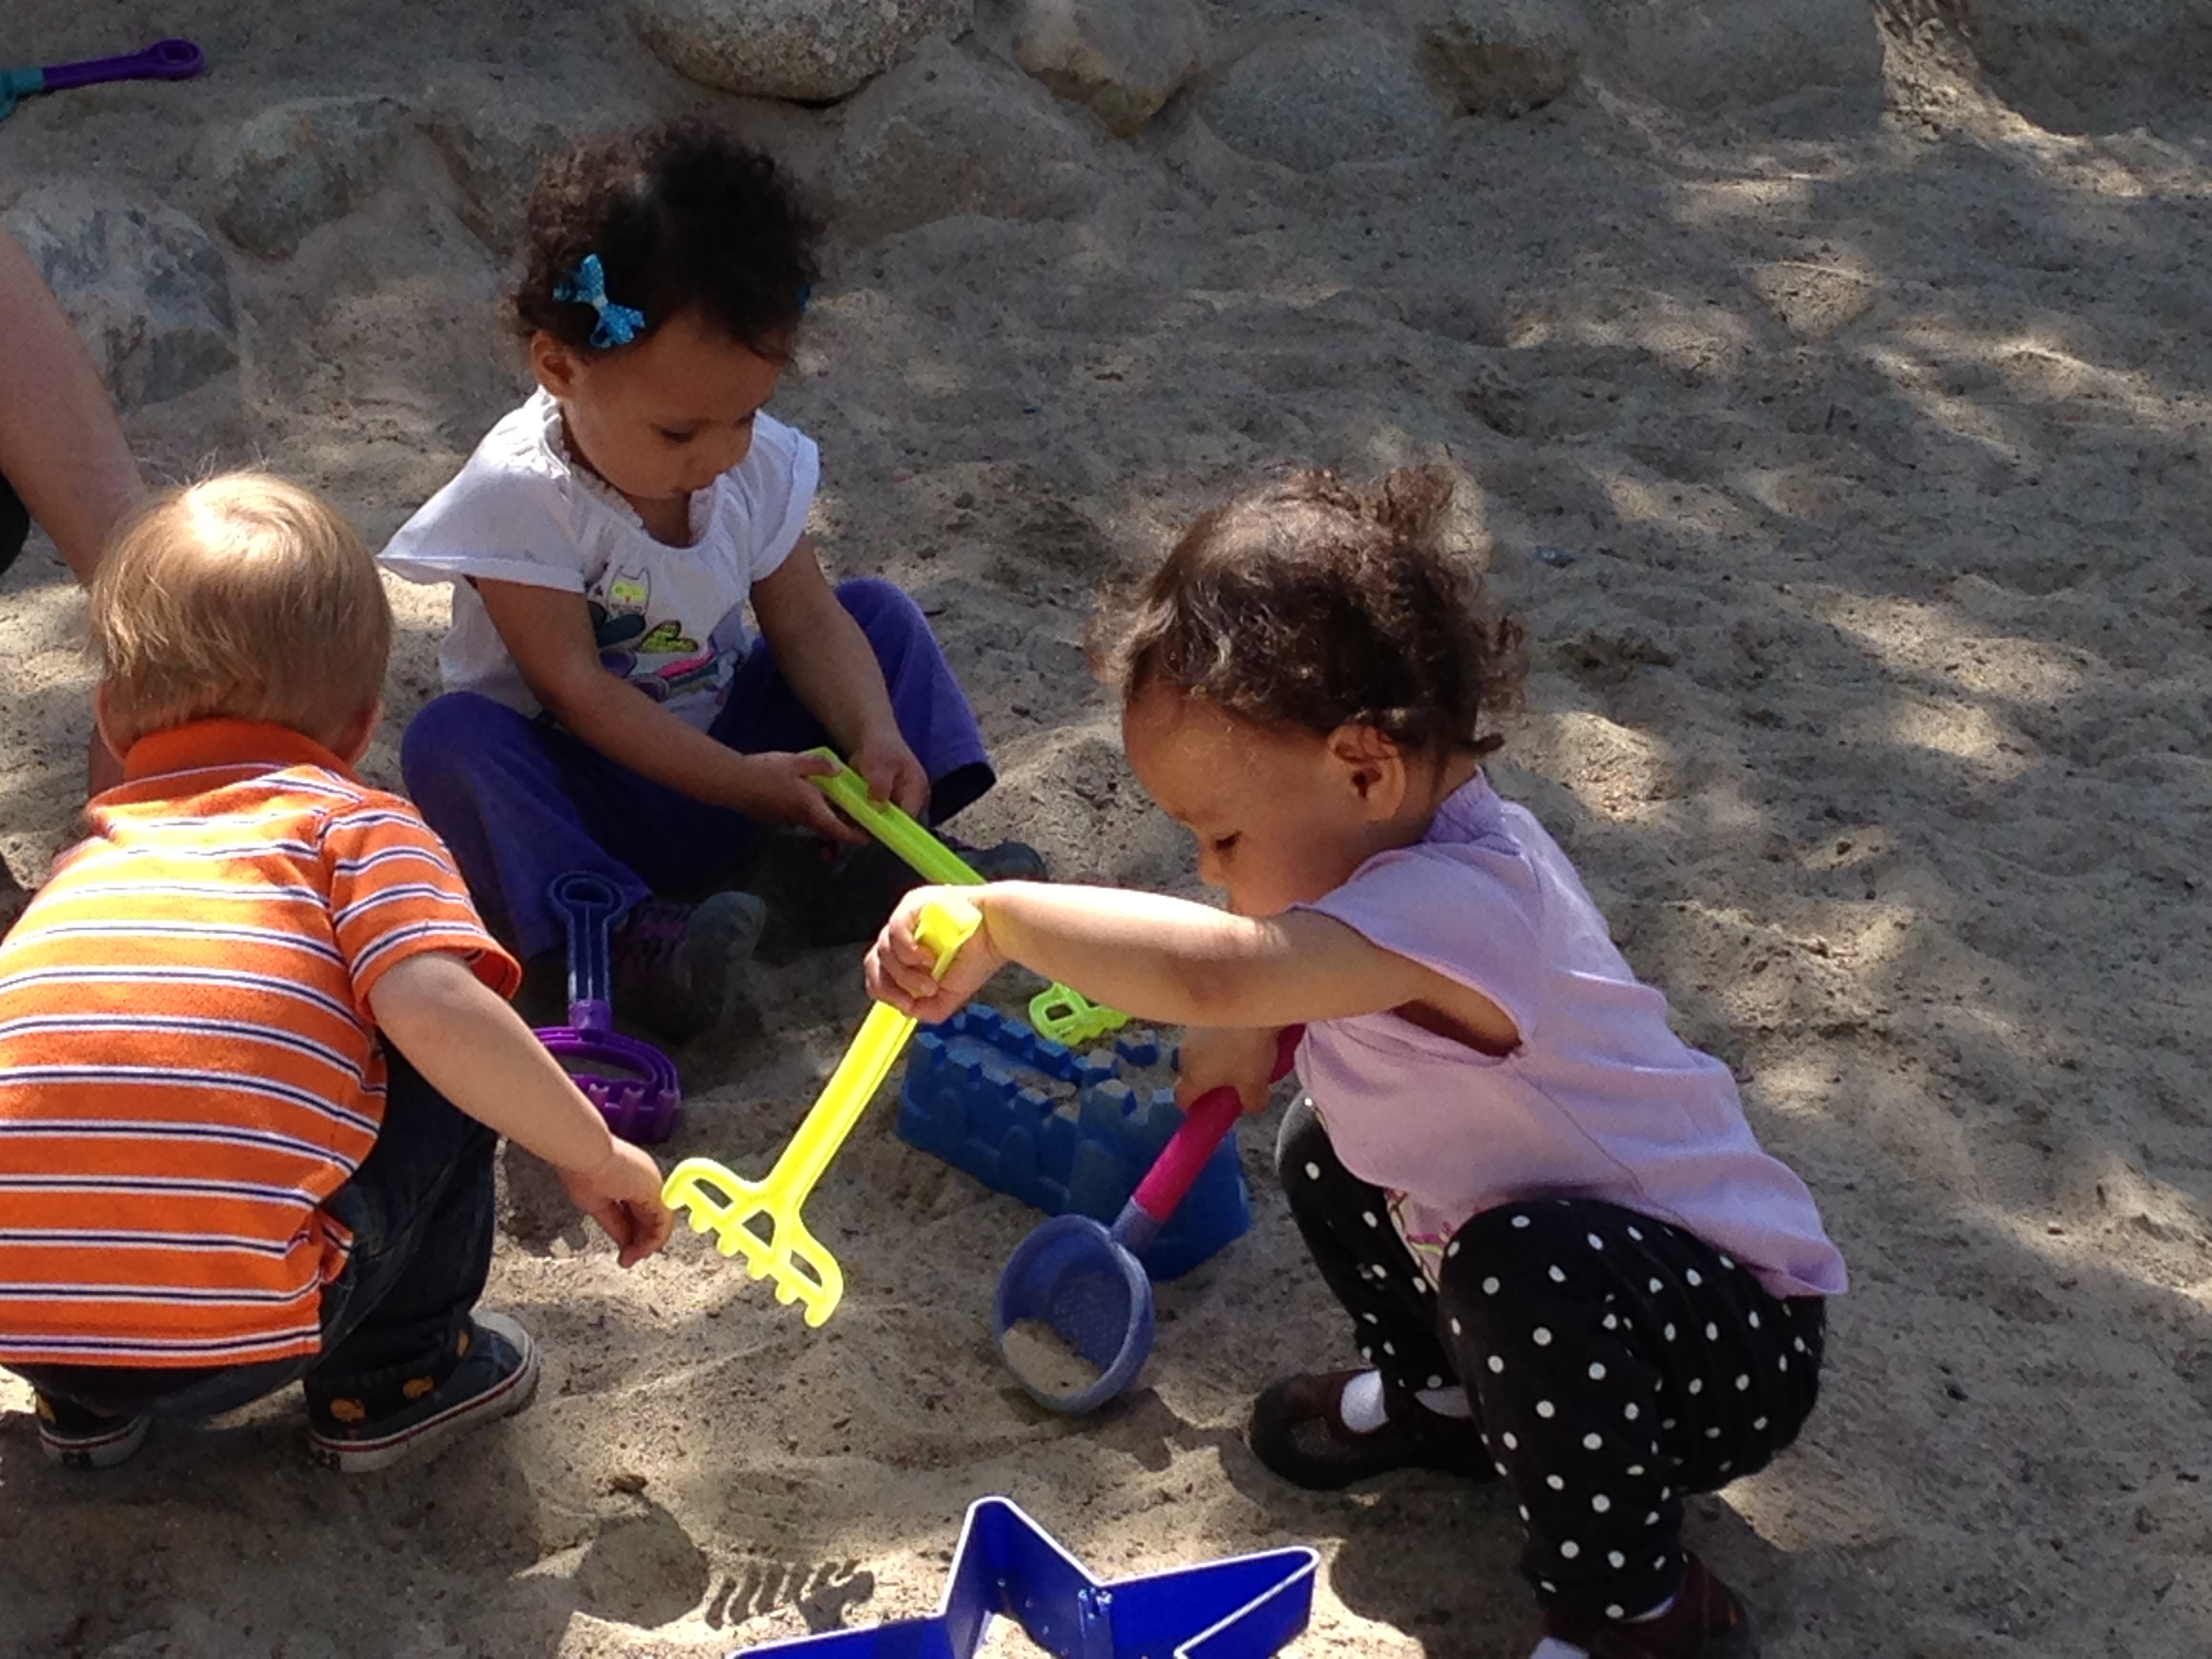 Diana (l) and Vanessa, in the sand pit at Thanksgiving Point's Children's Discovery Garden